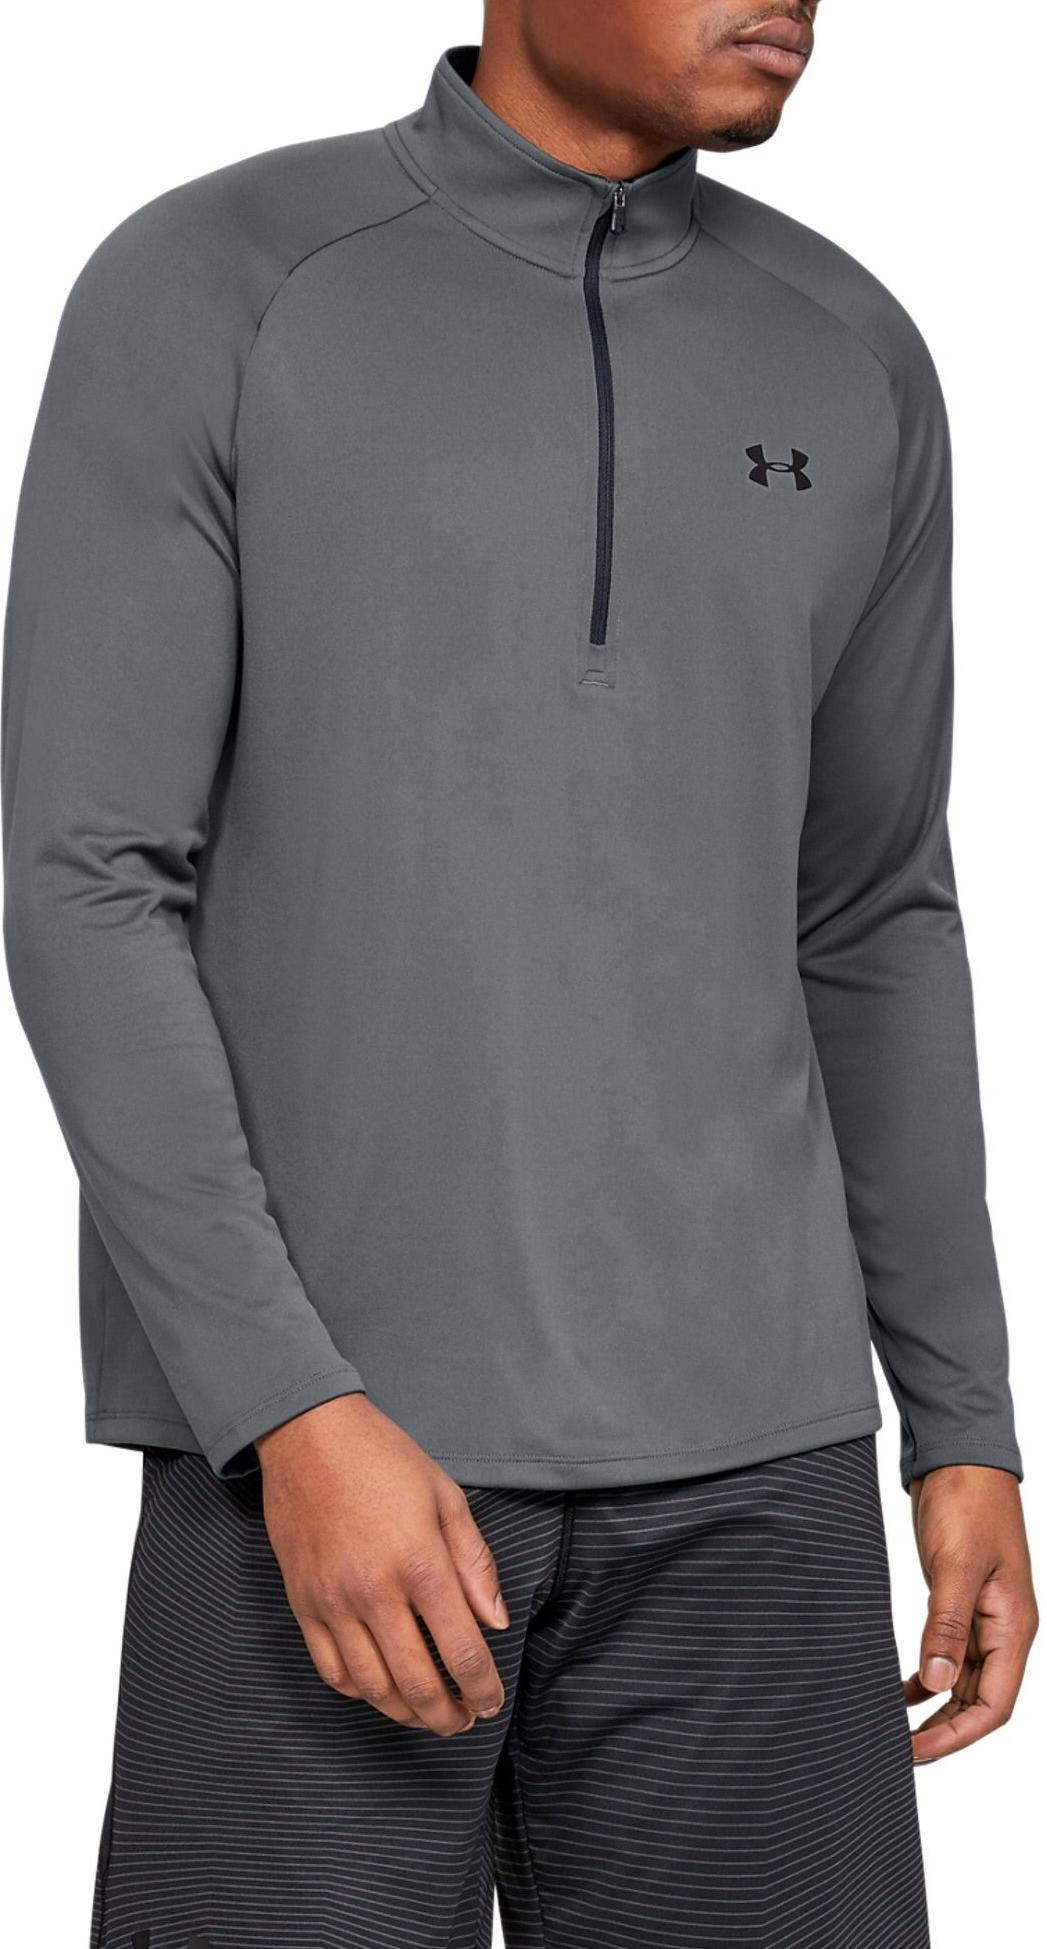 Under Armour UA Tech 2.0 1/2 Zip Hosszú ujjú póló